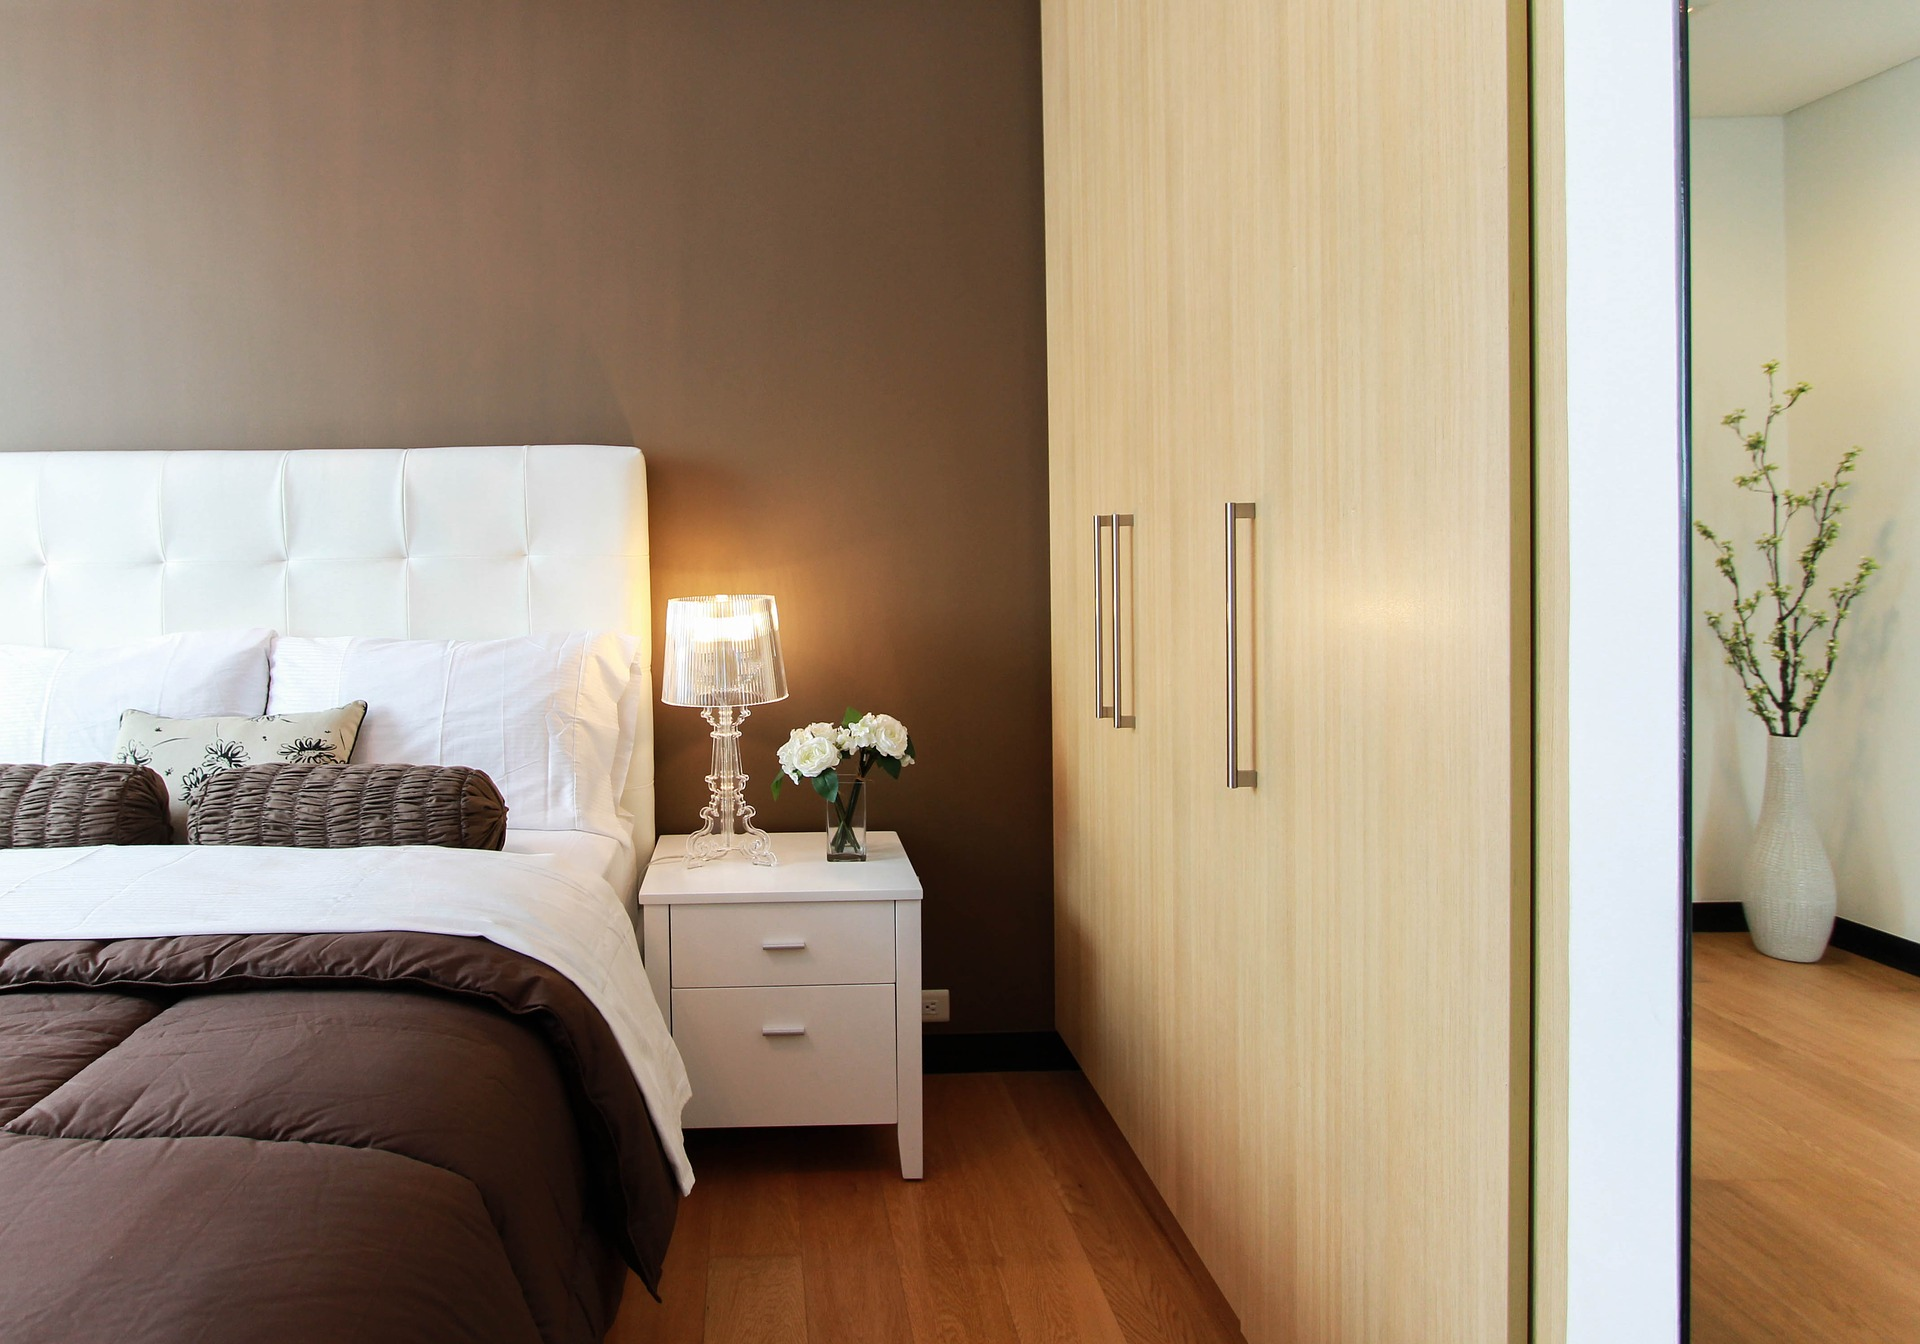 Bedroom with brown bedding and sleek modern closets.